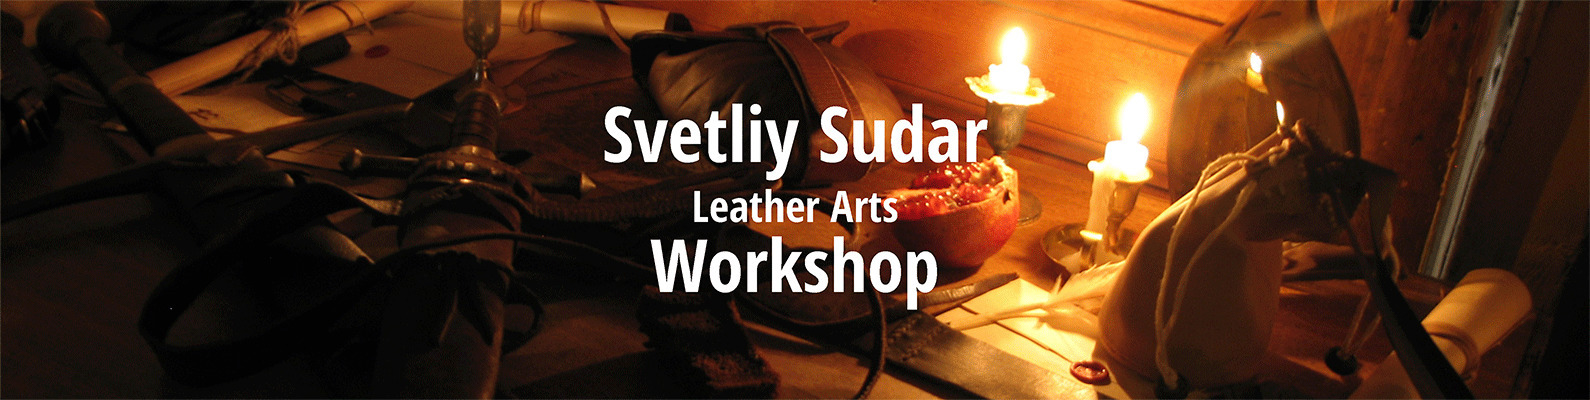 SvetliySudarWorkshop (@svetliysudarworkshop) Cover Image